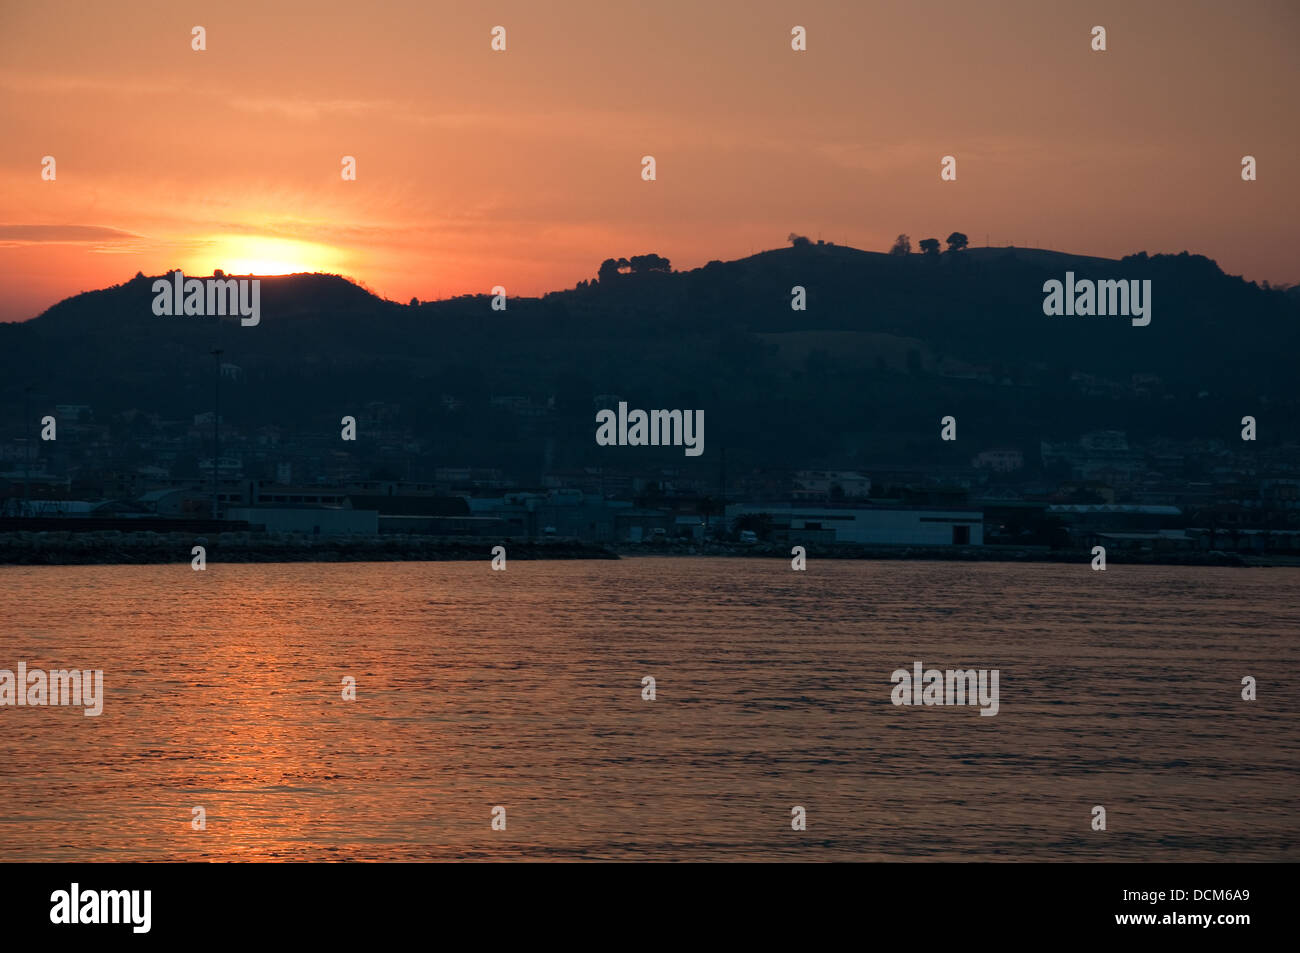 Tramonto Sunset Stock Photos Tramonto Sunset Stock Images